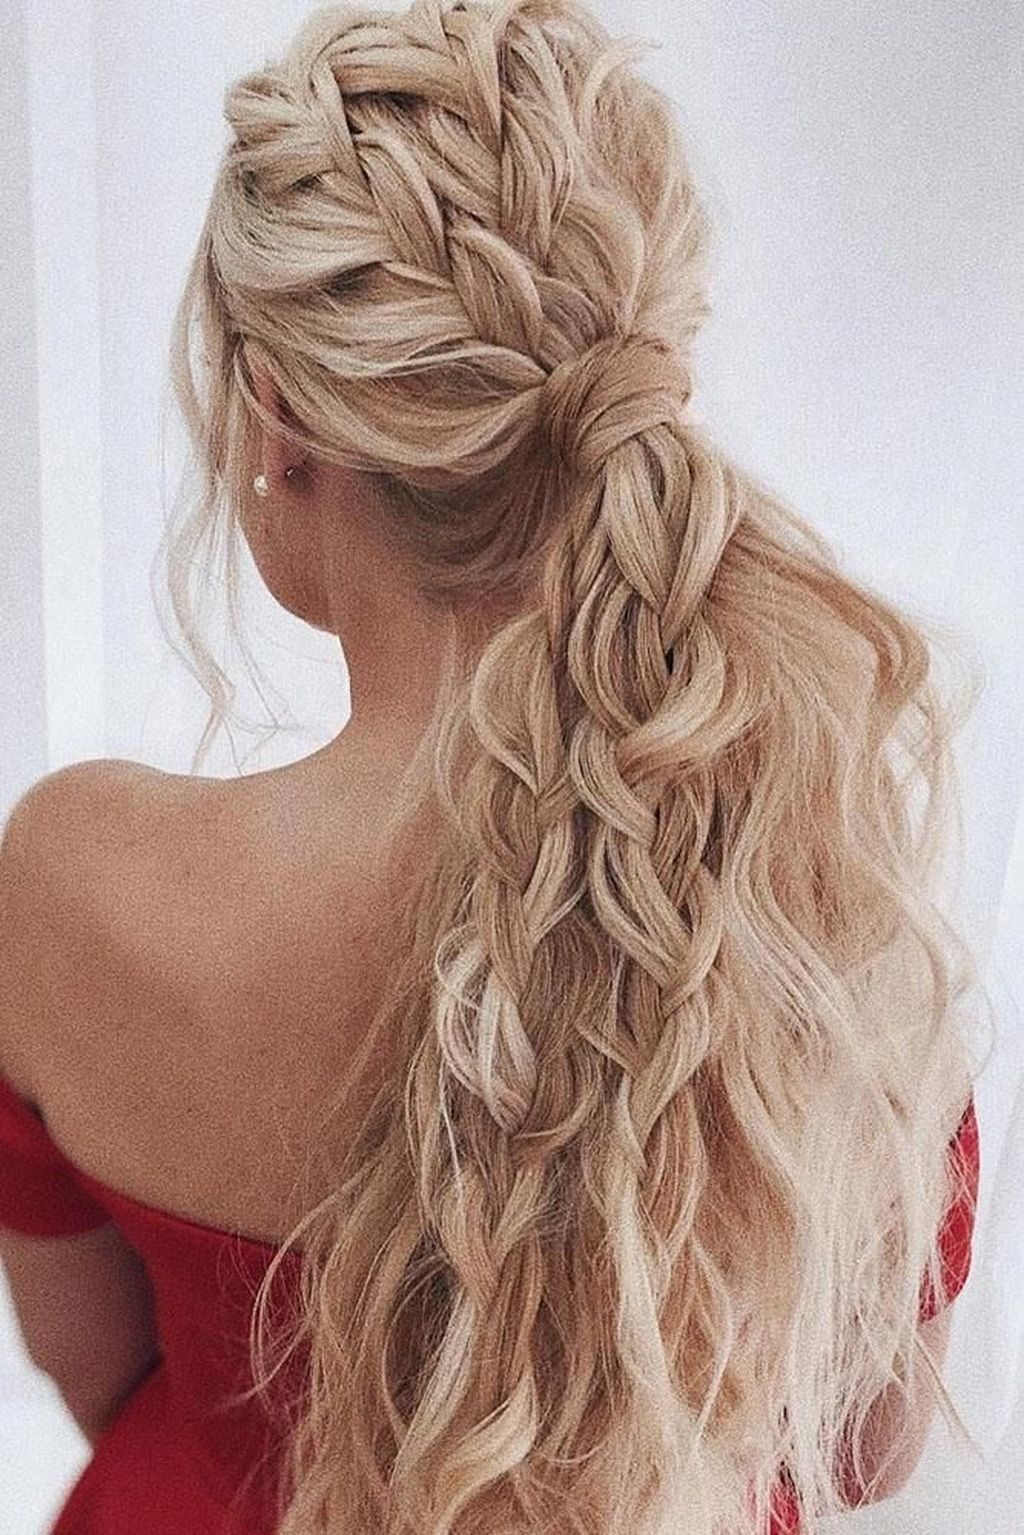 40 Pretty Prom Hairstyle Ideas For Curly Long Hair Long Curly Hair Wedding Hairstyles For Long Hair Long Hair Wedding Styles